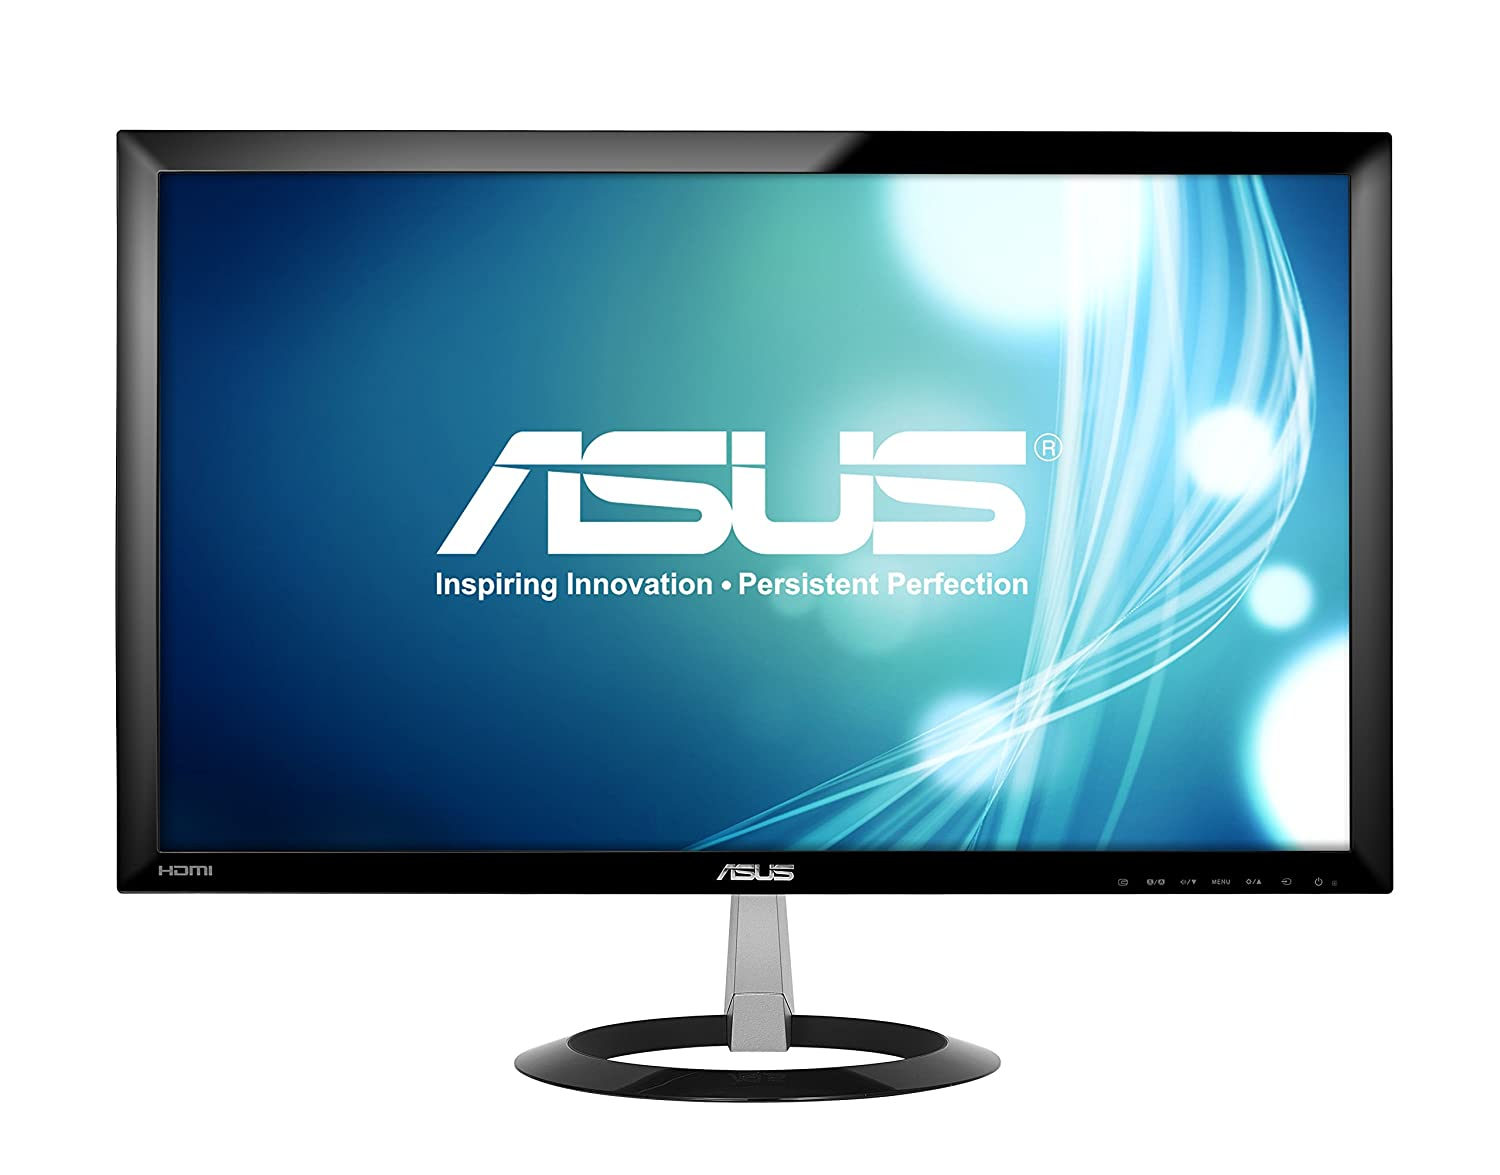 ASUS 23-inch Full HD Wide-Screen Gaming Monitor VX238H 1080p, 1ms Rapid Response Time, Dual HDMI, Built in Speakers, Low Blue Light, Flicker Free, ASUS EyeCare